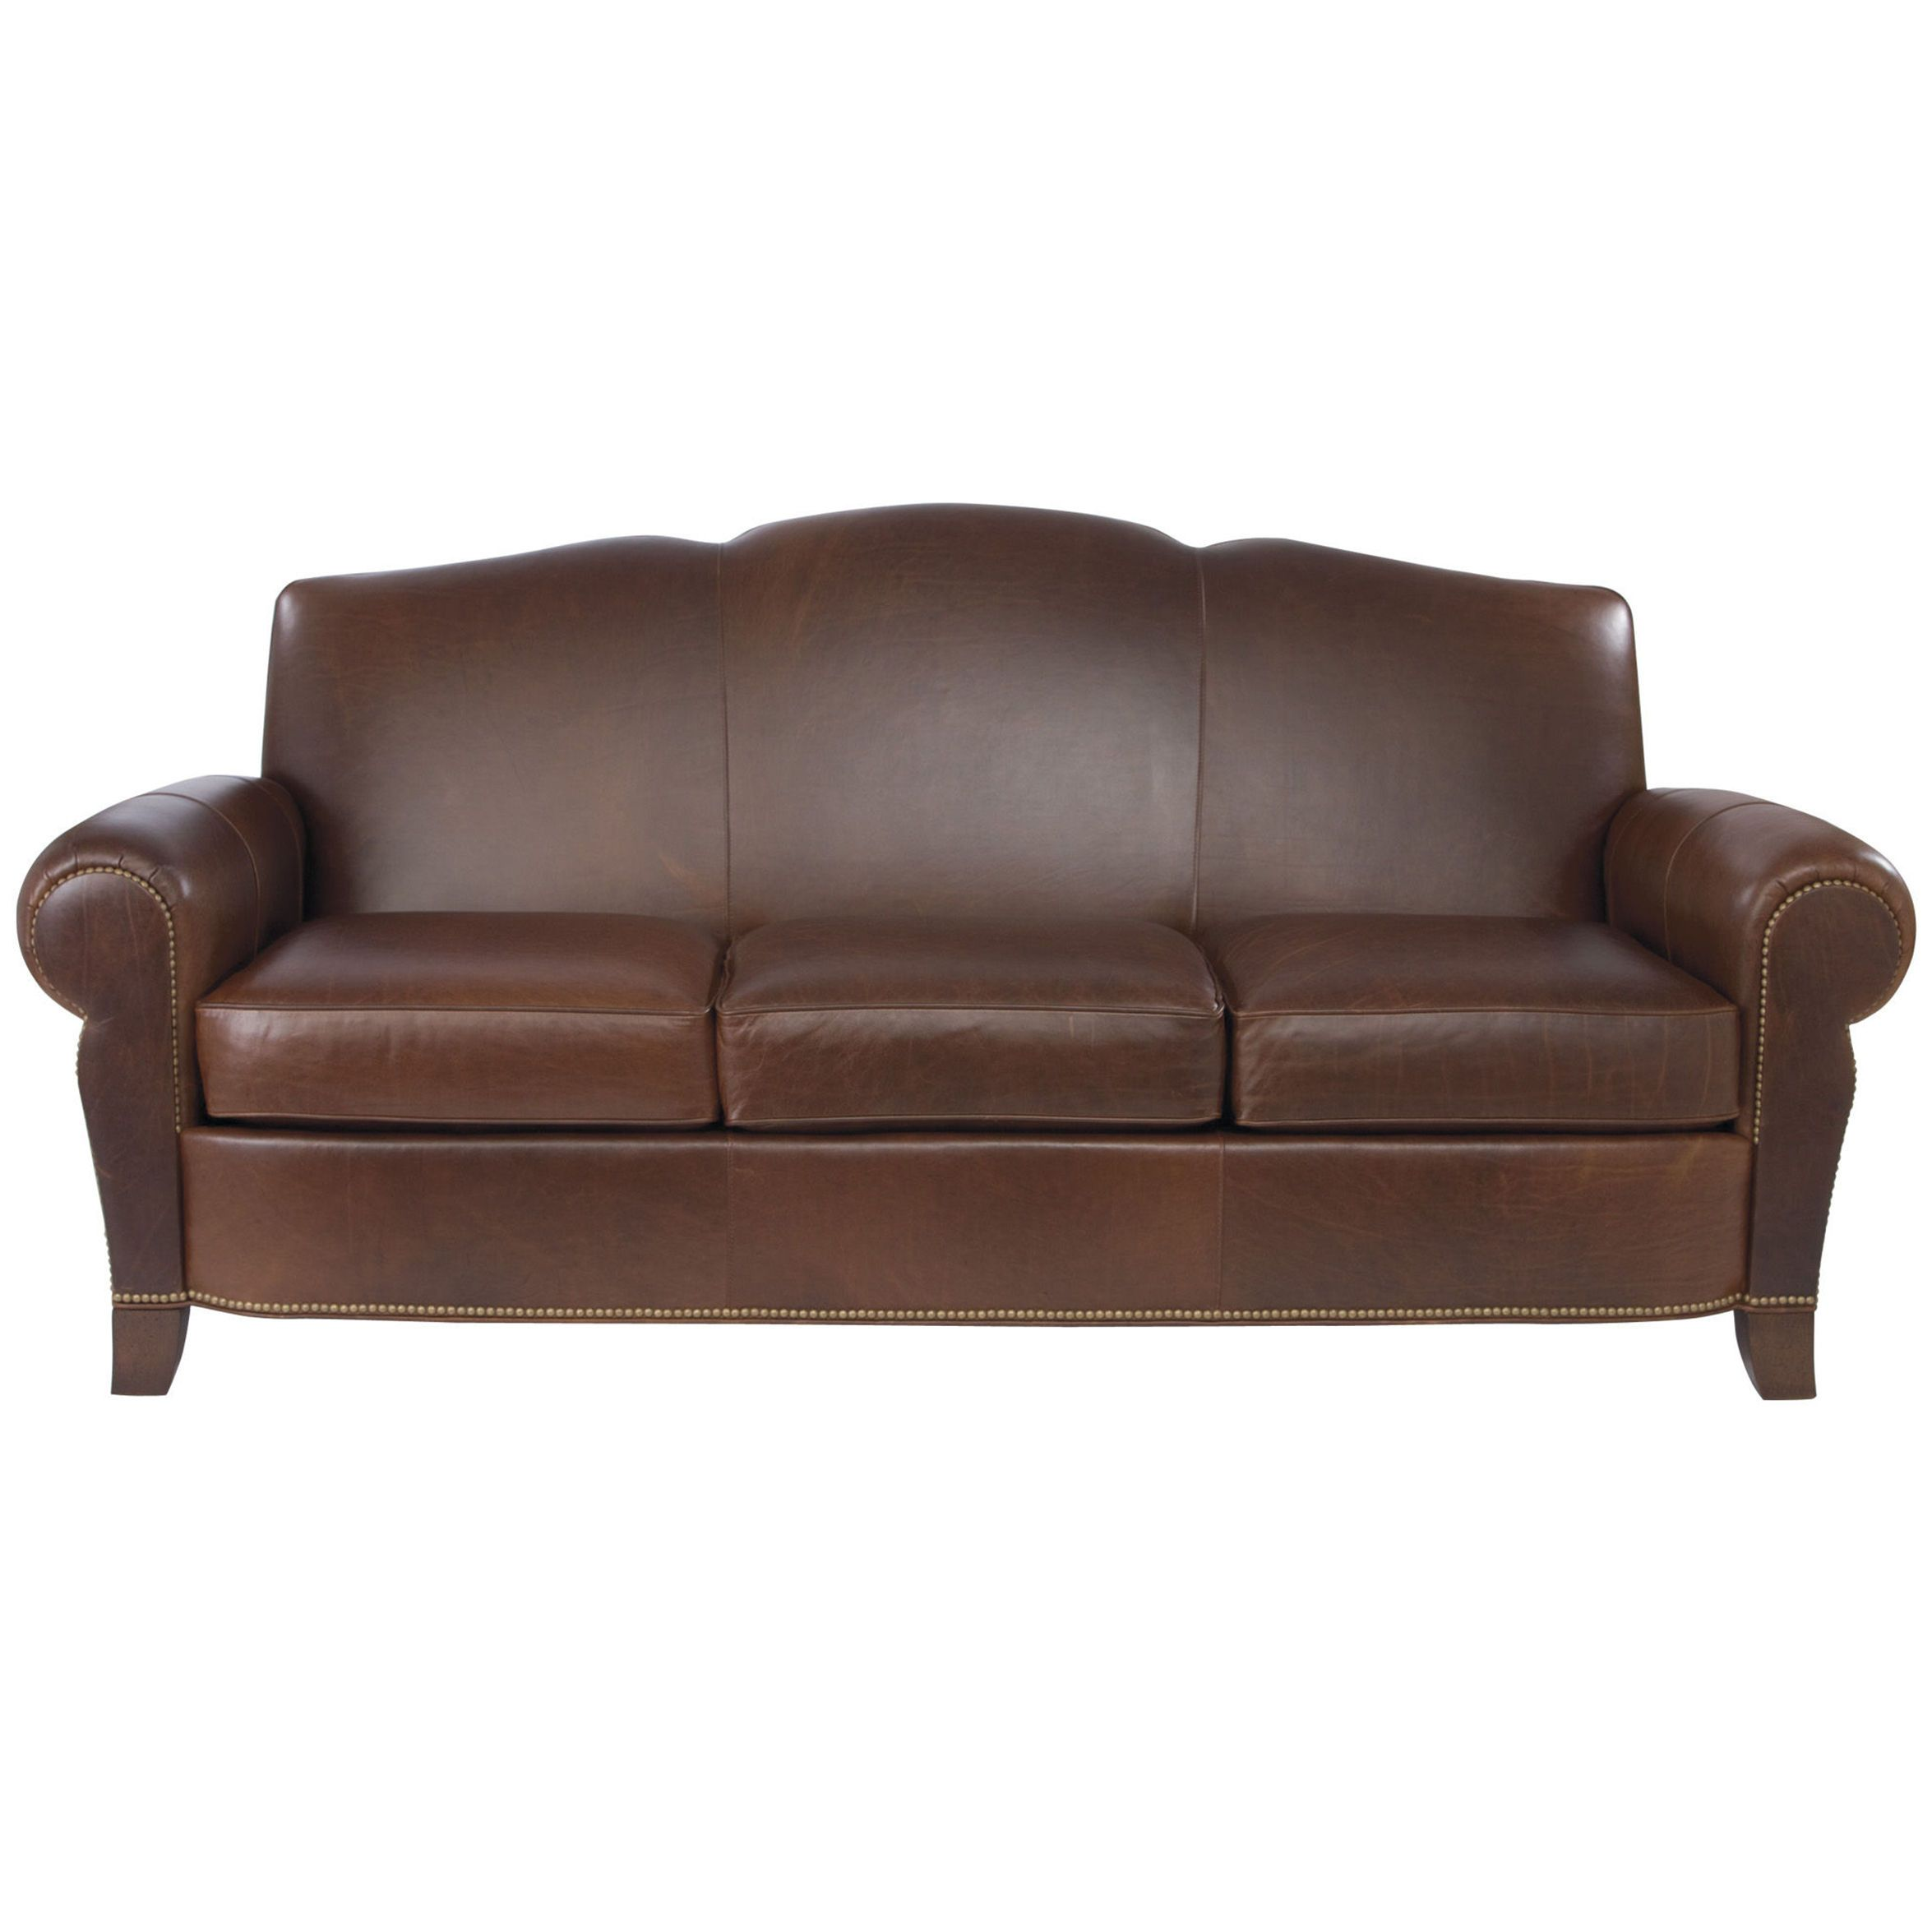 Paloma Three-Cushion Leather Sofa - Ethan Allen US Can be customized ...